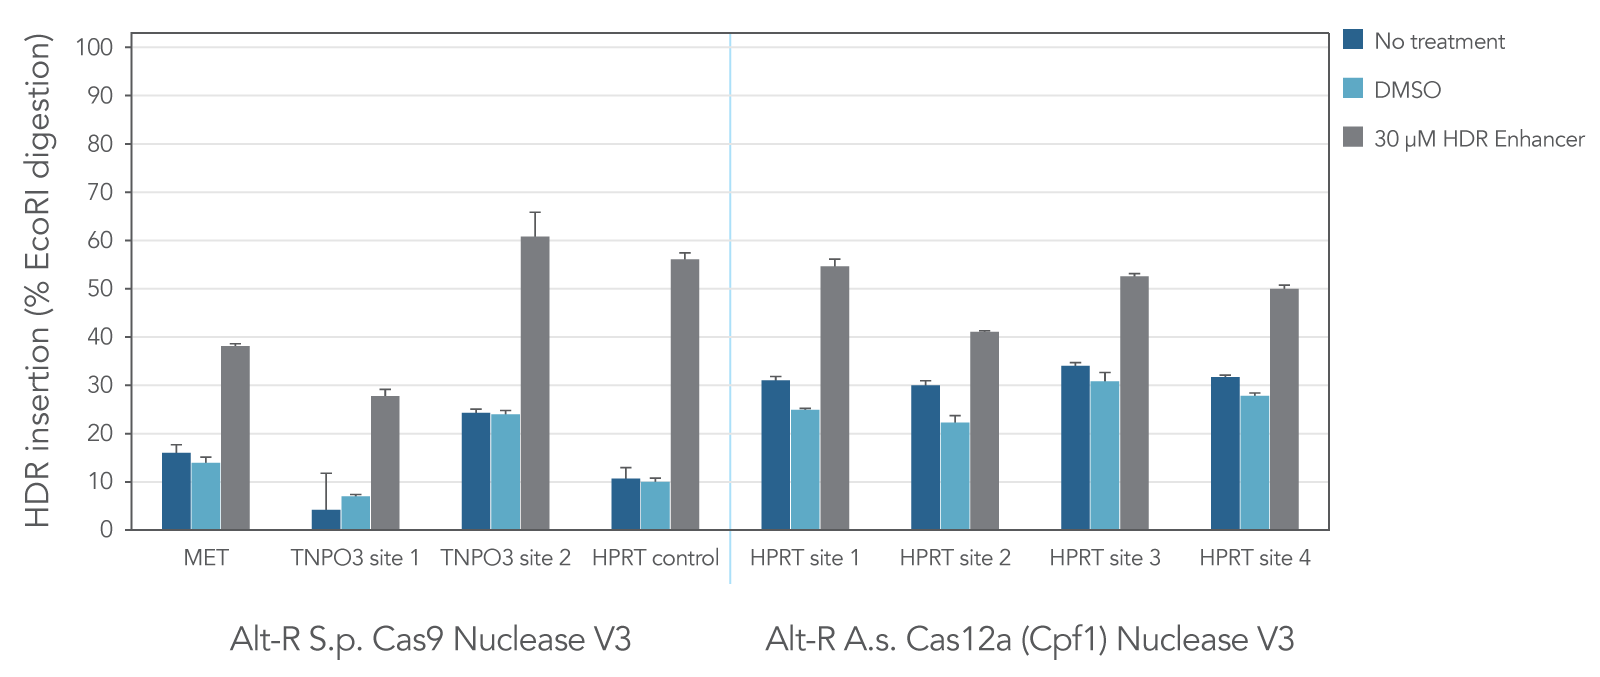 Alt-R HDR Enhancer improves rates of HDR mediated by either S.p. Cas9 or A.s. Cas12a nuclease